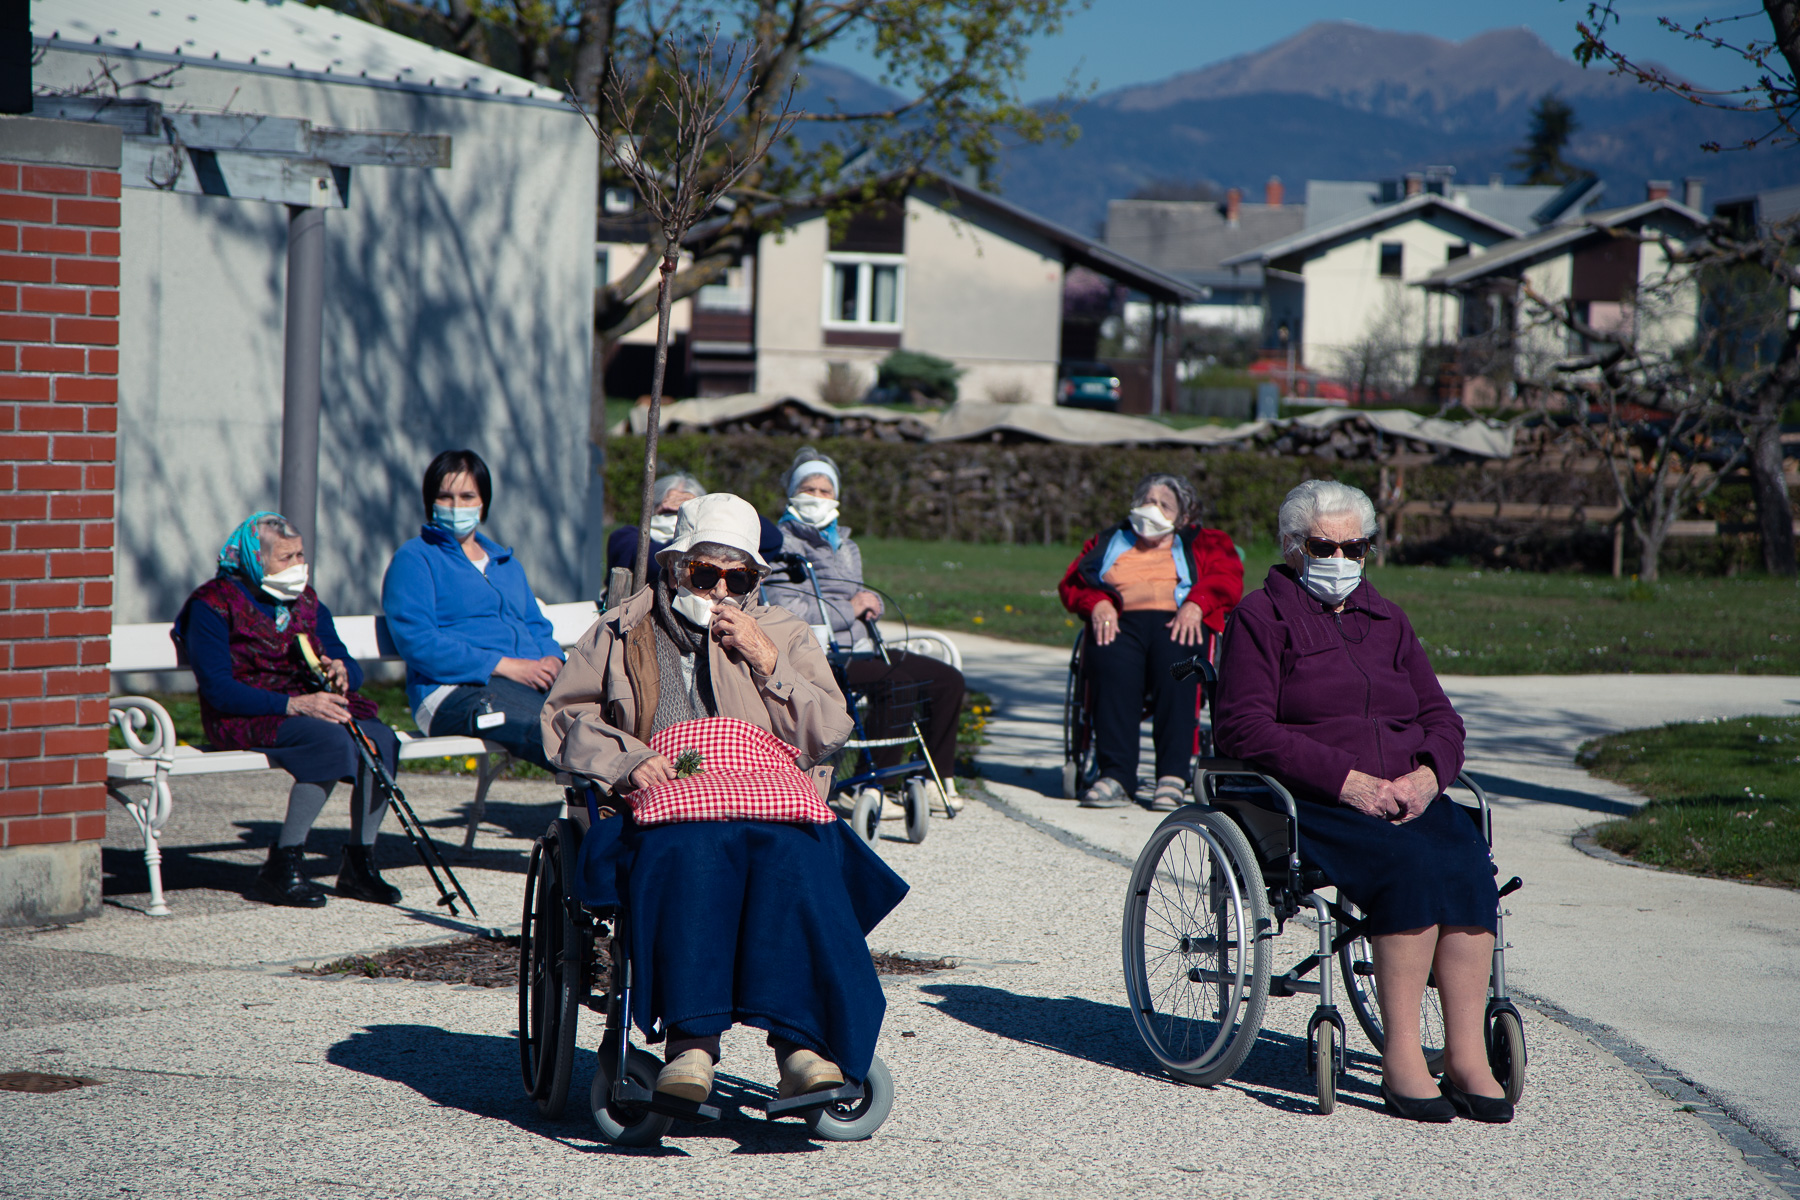 Seniors of dr. Janko Benedik nursing home in Radovljica, Slovenia, listen to a zitherist play outside the nursing home on April 16, 2020. Nursing homes face biggest difficulties in times of the coronavirus outbreak, because the elderly are at greatest risk of developing a life-threatening condition. Concerts like these brighten up their days in  quarantine.